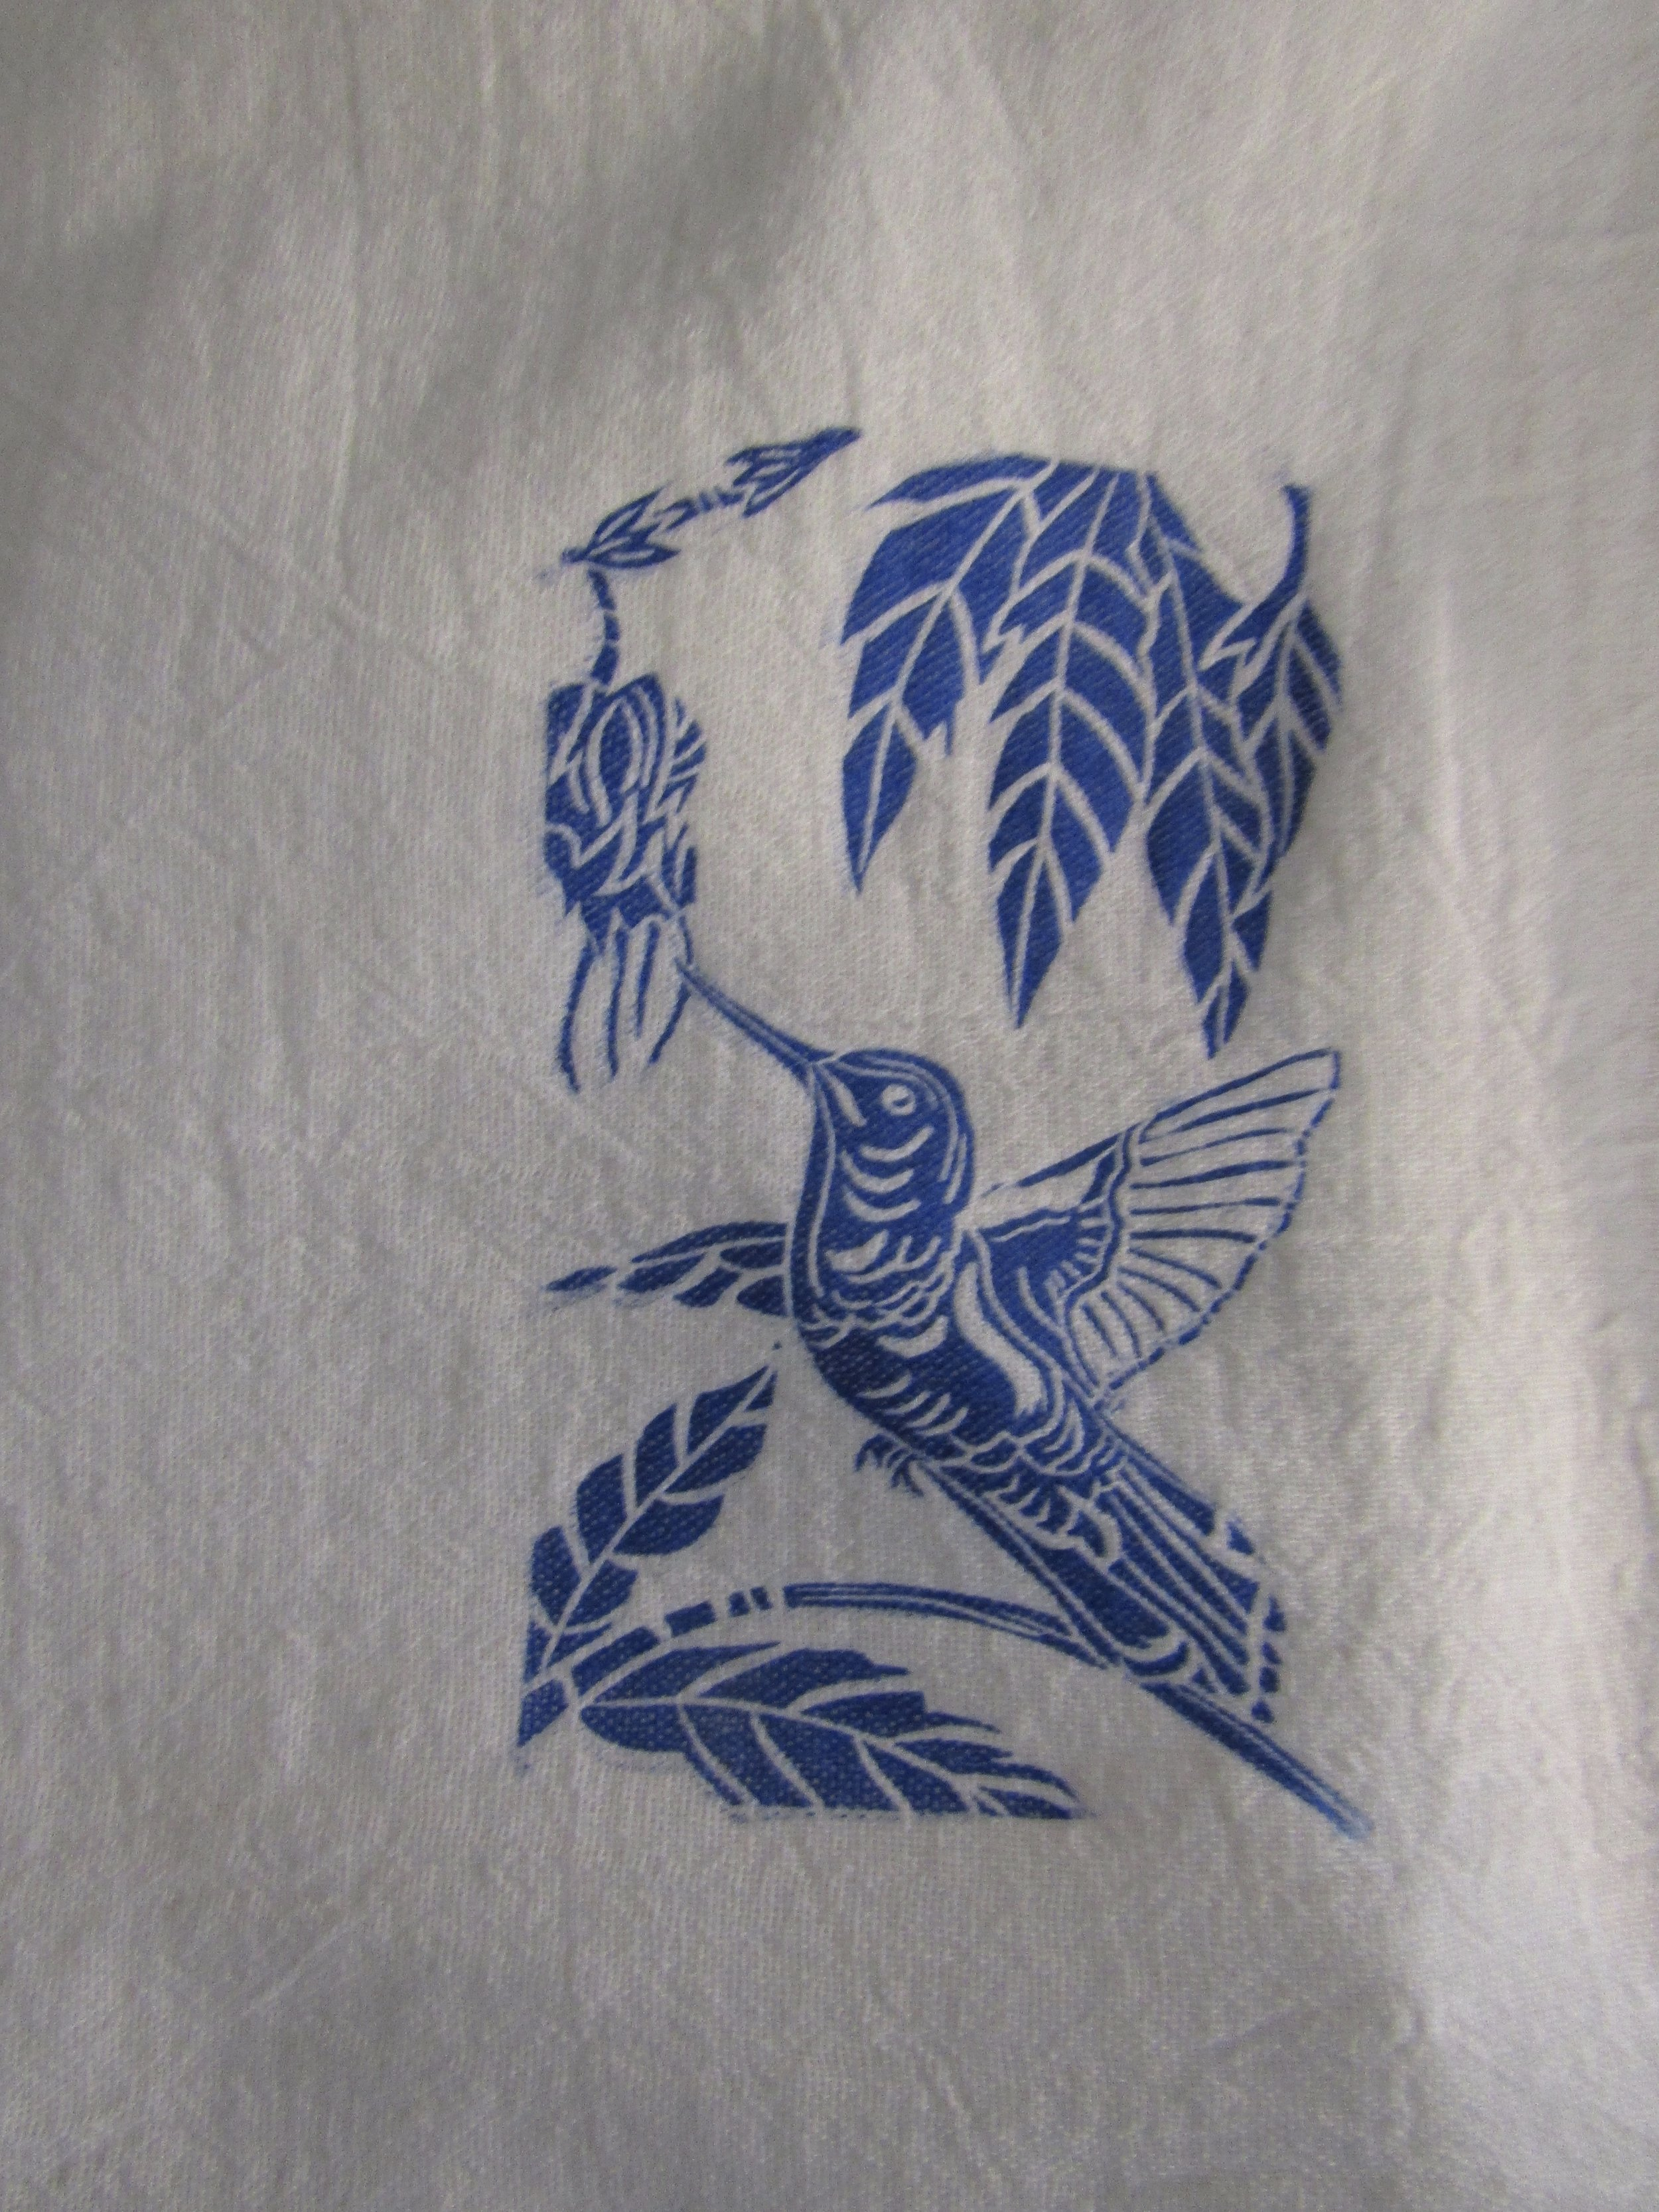 A little hummingbird adorns this towel.